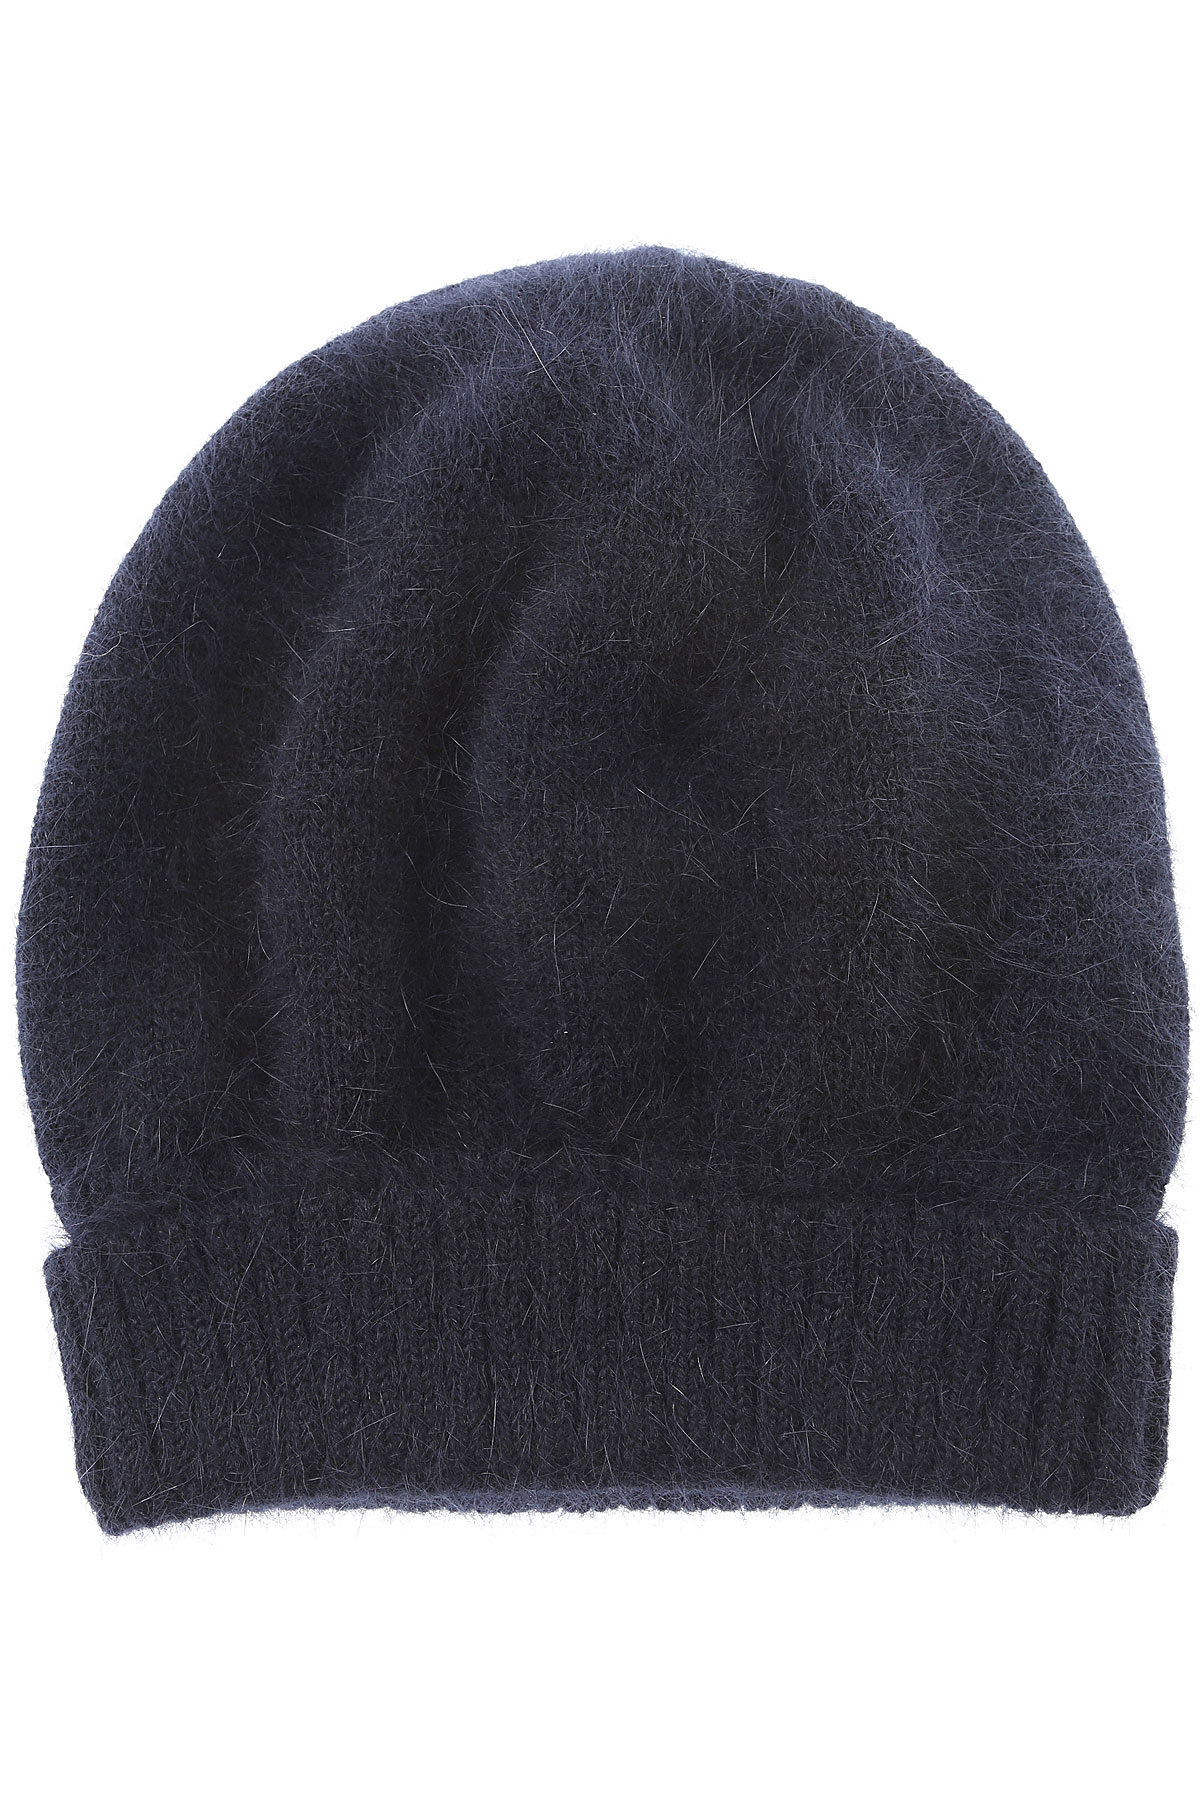 Image of Roberto Collina Hat for Women, navy, Angora, 2017